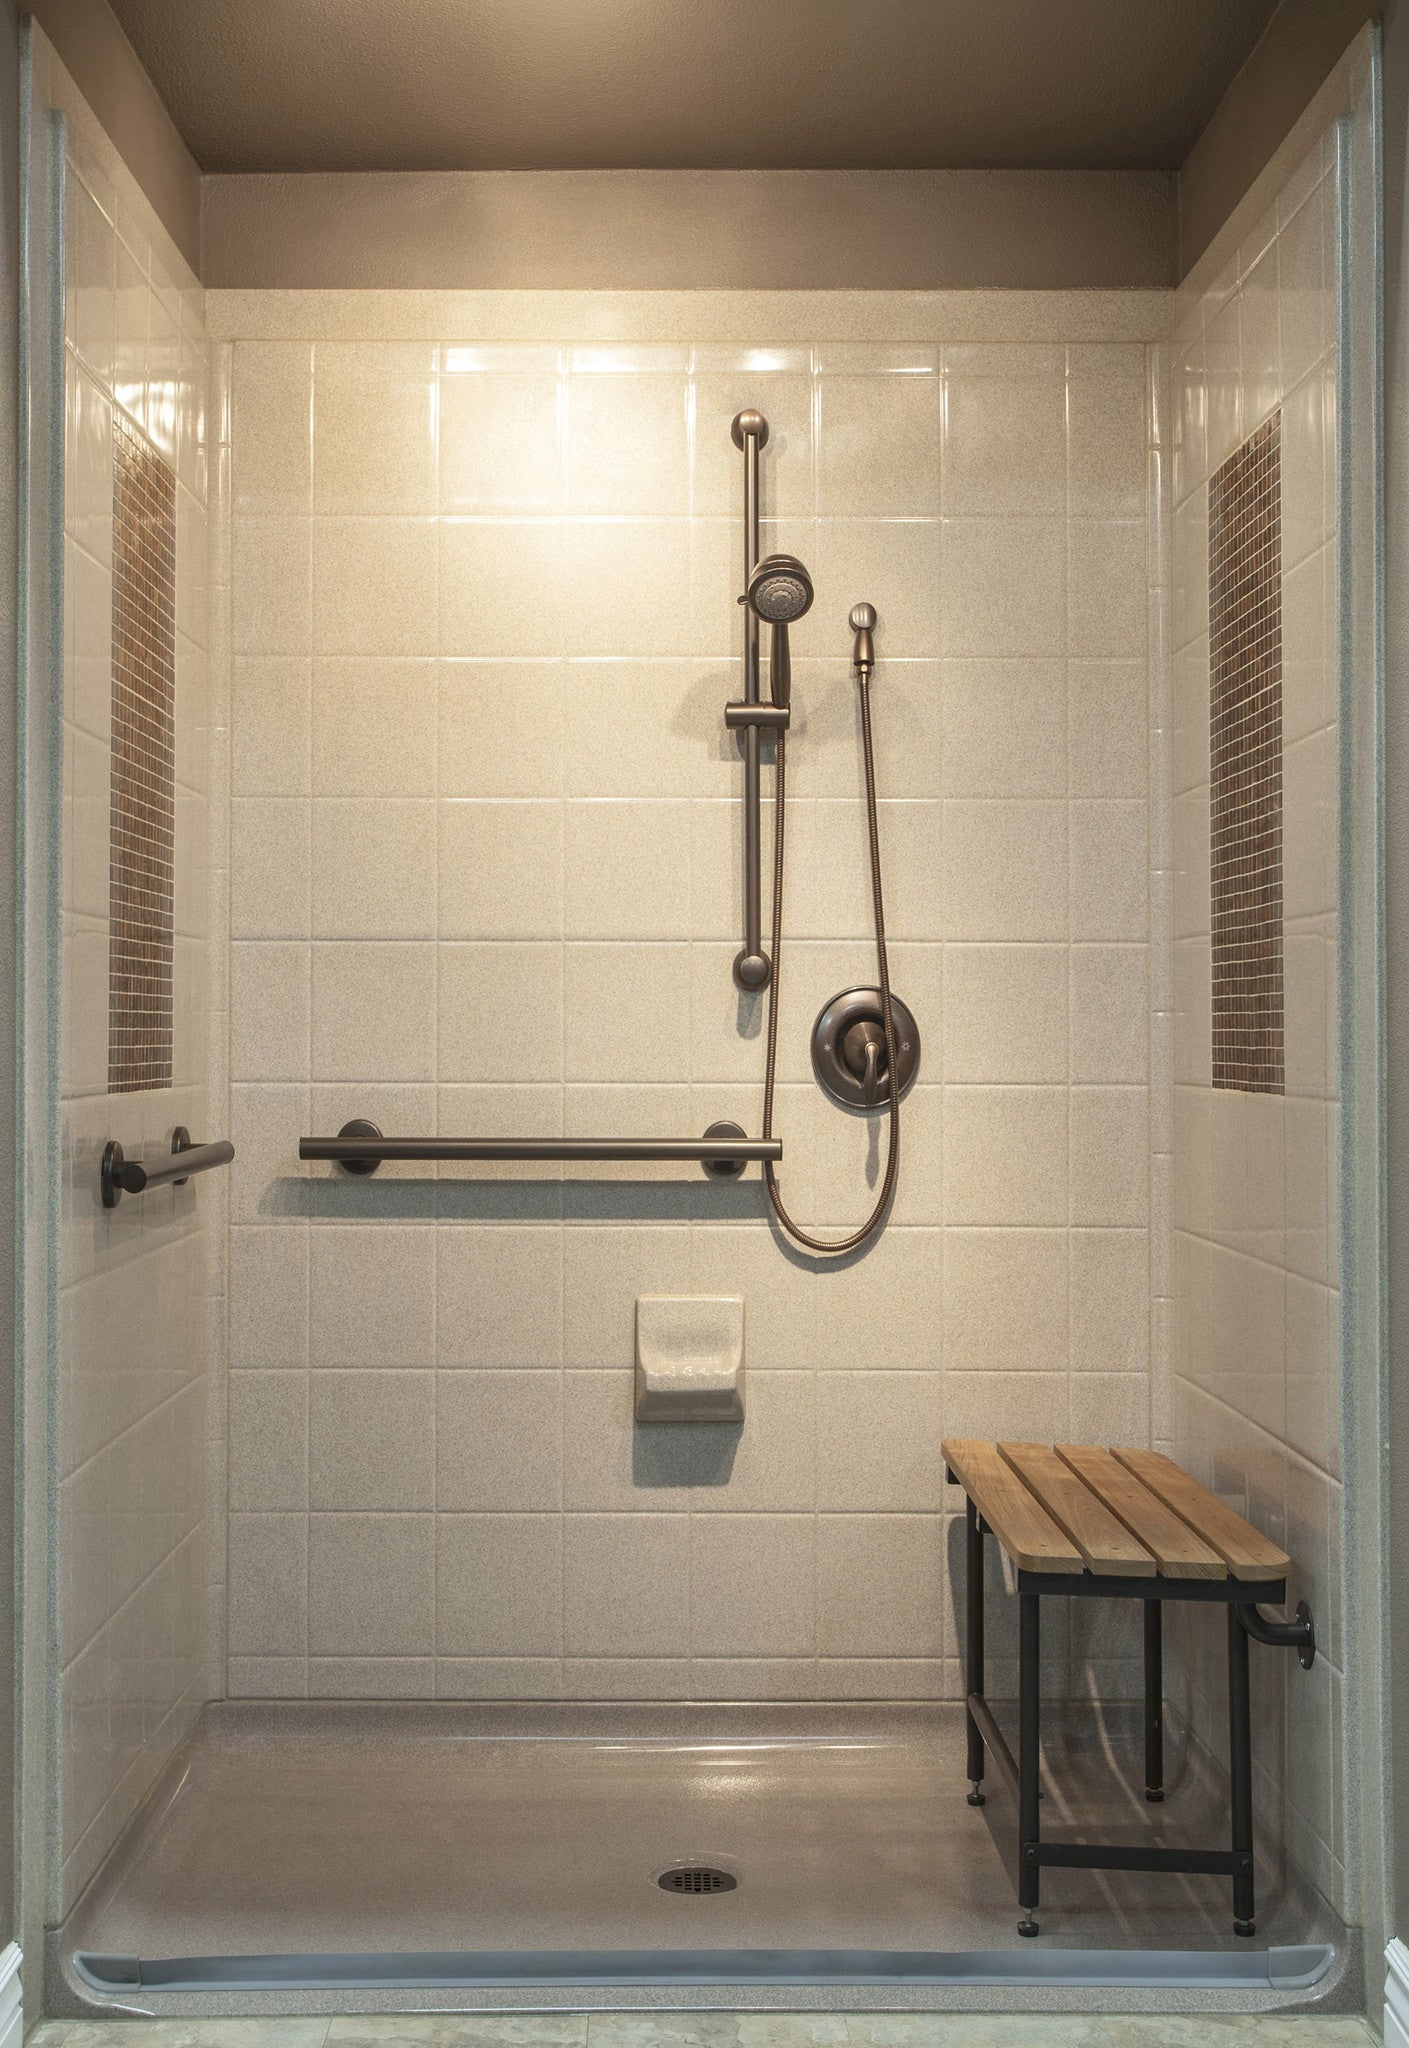 Walk In Showers Bathroom Remodeling Ada Compliant Safe